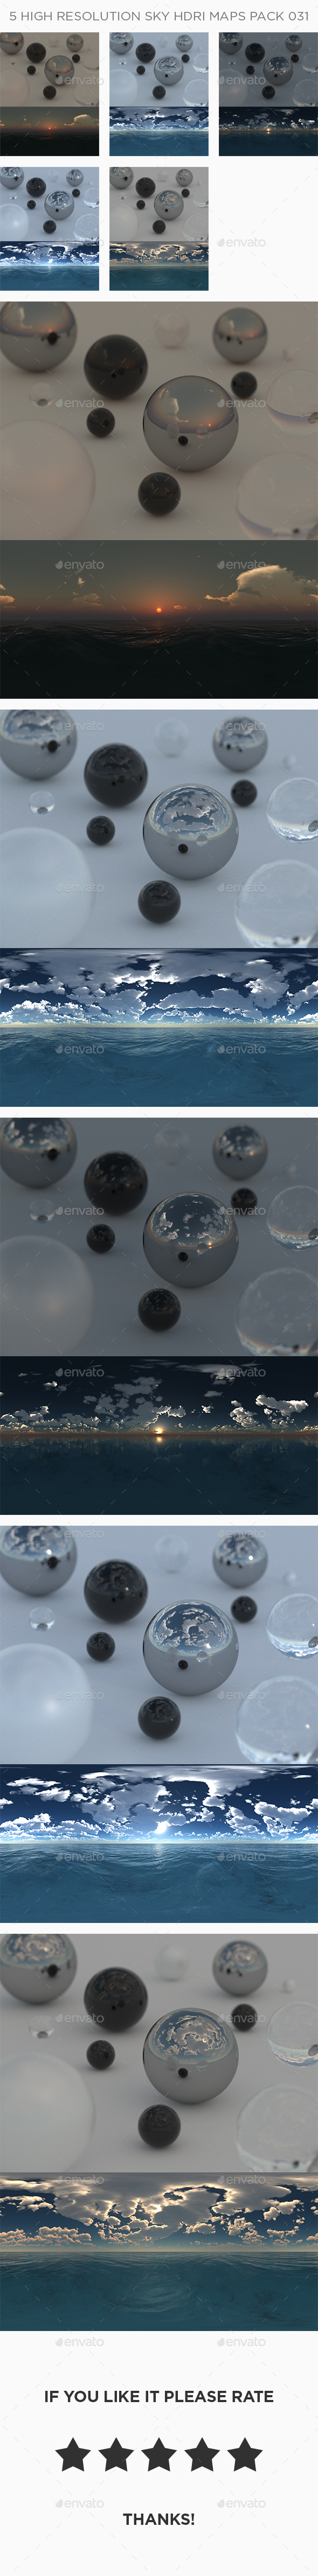 5 High Resolution Sky HDRi Maps Pack 031 - 3DOcean Item for Sale